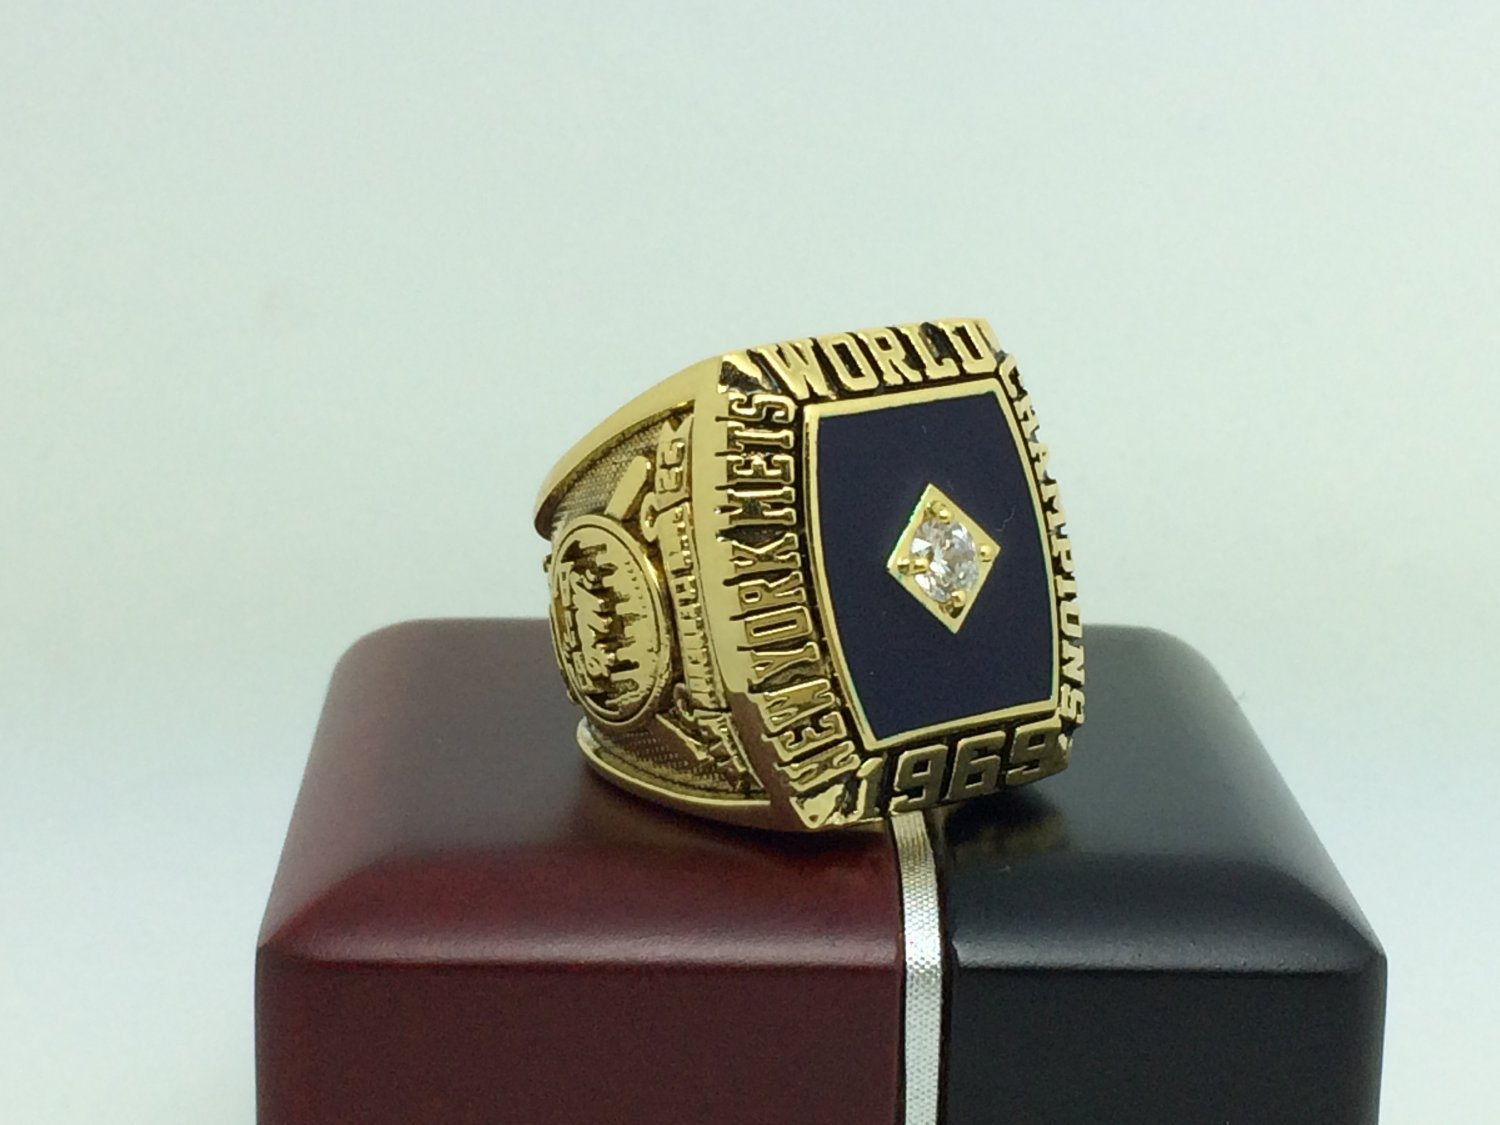 1969 Los Angeles Dodgers world series Championship Ring 9-13 Size With wooden box